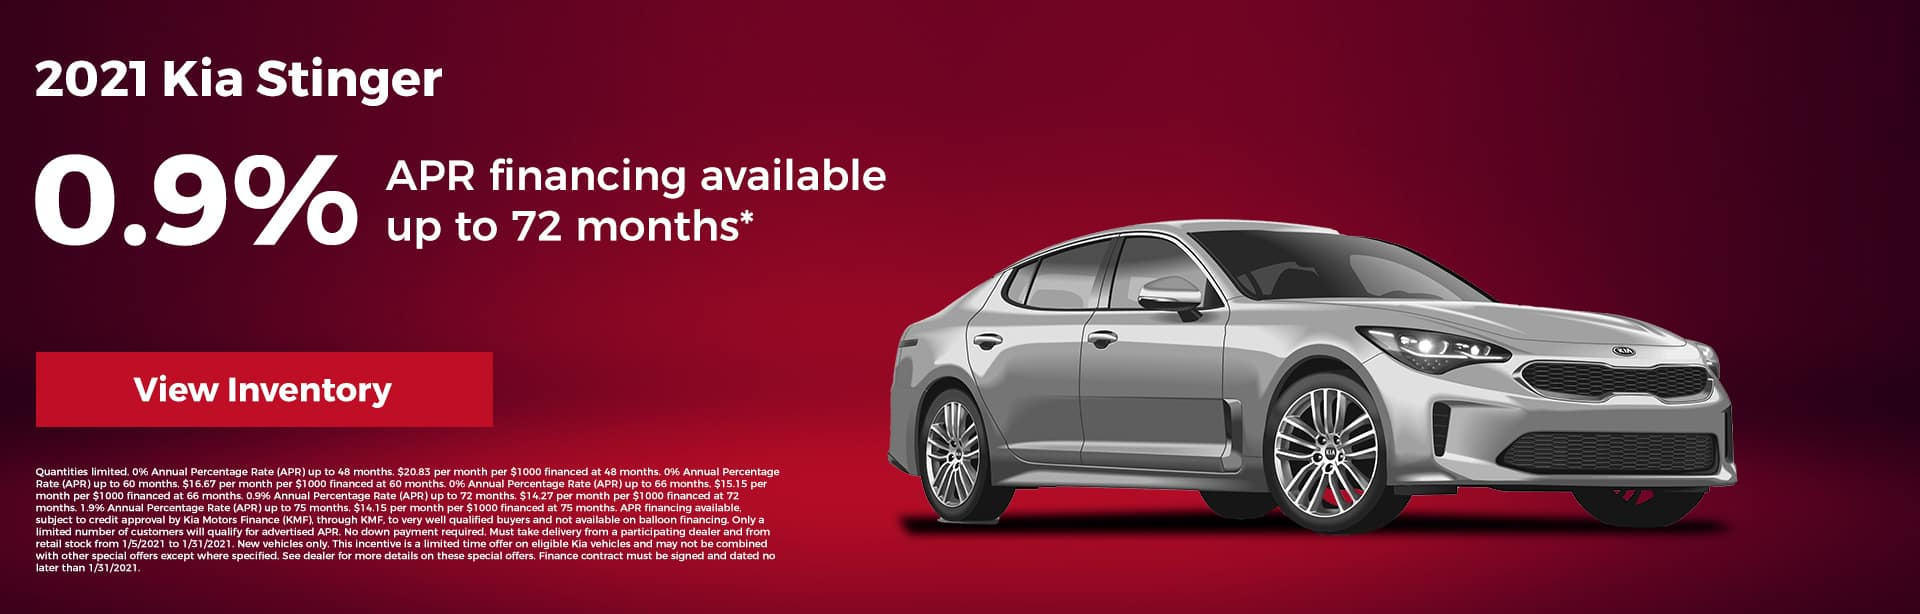 2021 Kia Stinger 0.9% APR financing available up to 72 months*